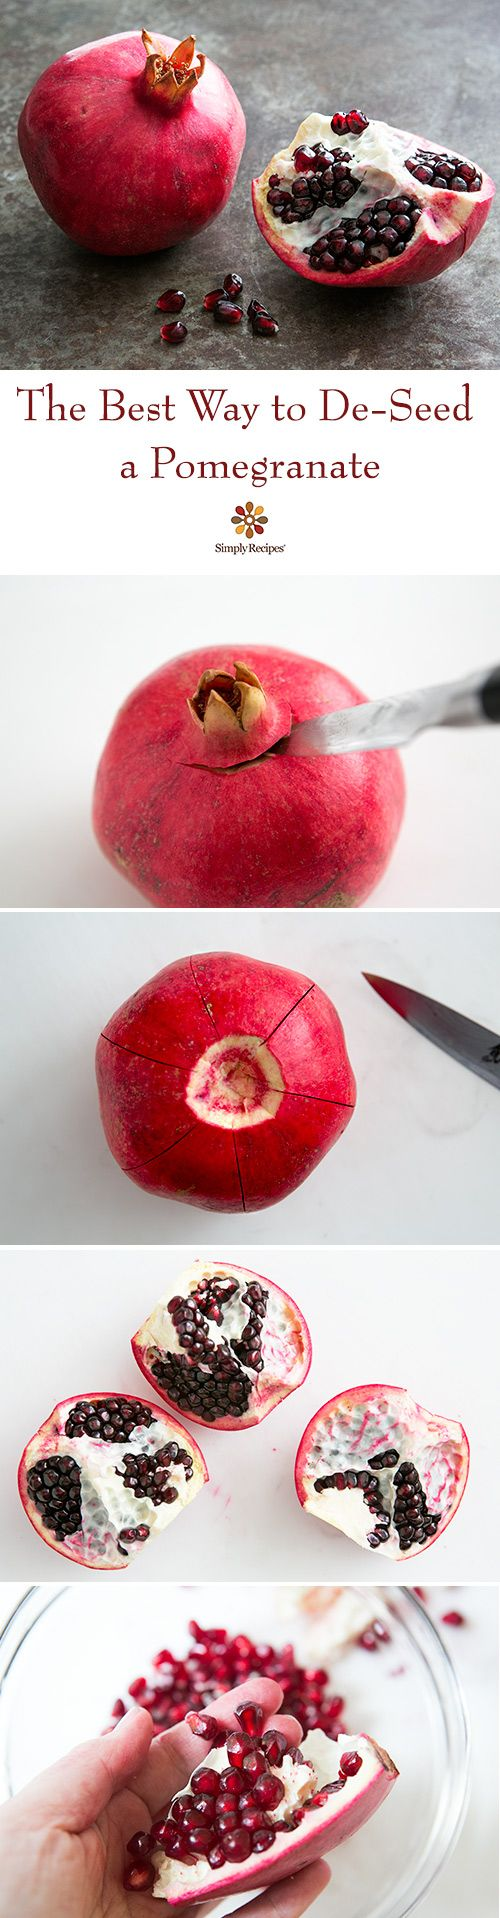 How to deseed a pomegranate - We grow pomegranates, and this is the best way we've found to cut and de-seed them, quickly and easily, with minimal mess, and no cut or bruised arils. On SimplyRecipes.com #HowTo